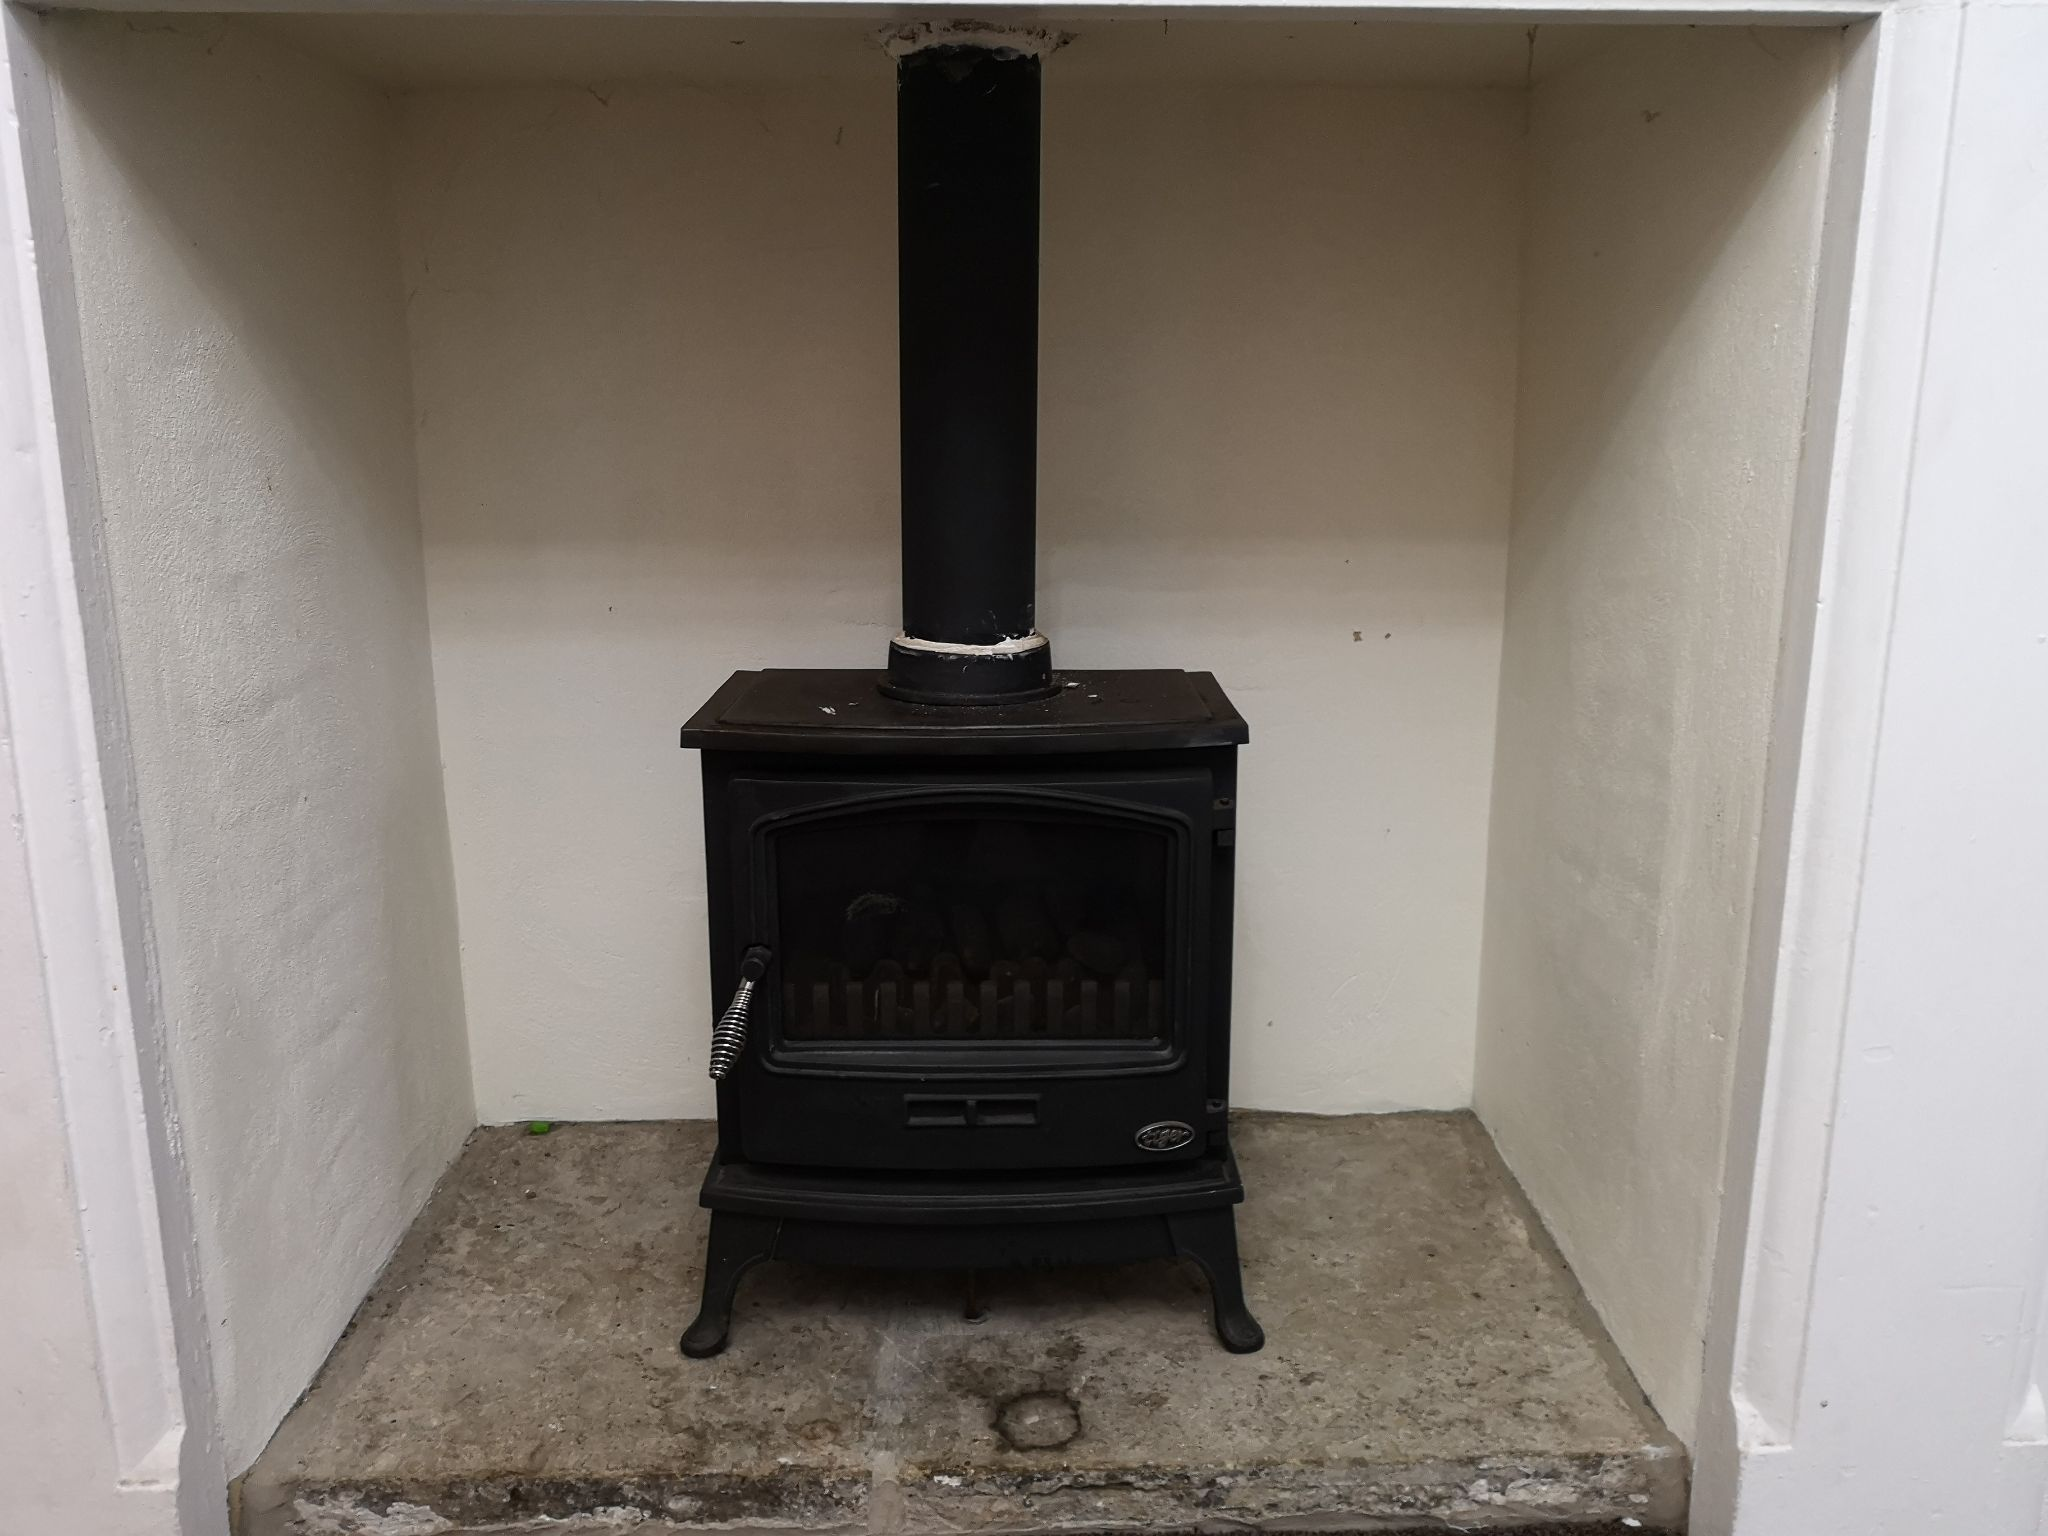 5 bedroom detached house For Sale in Huddersfield - Wood Burner